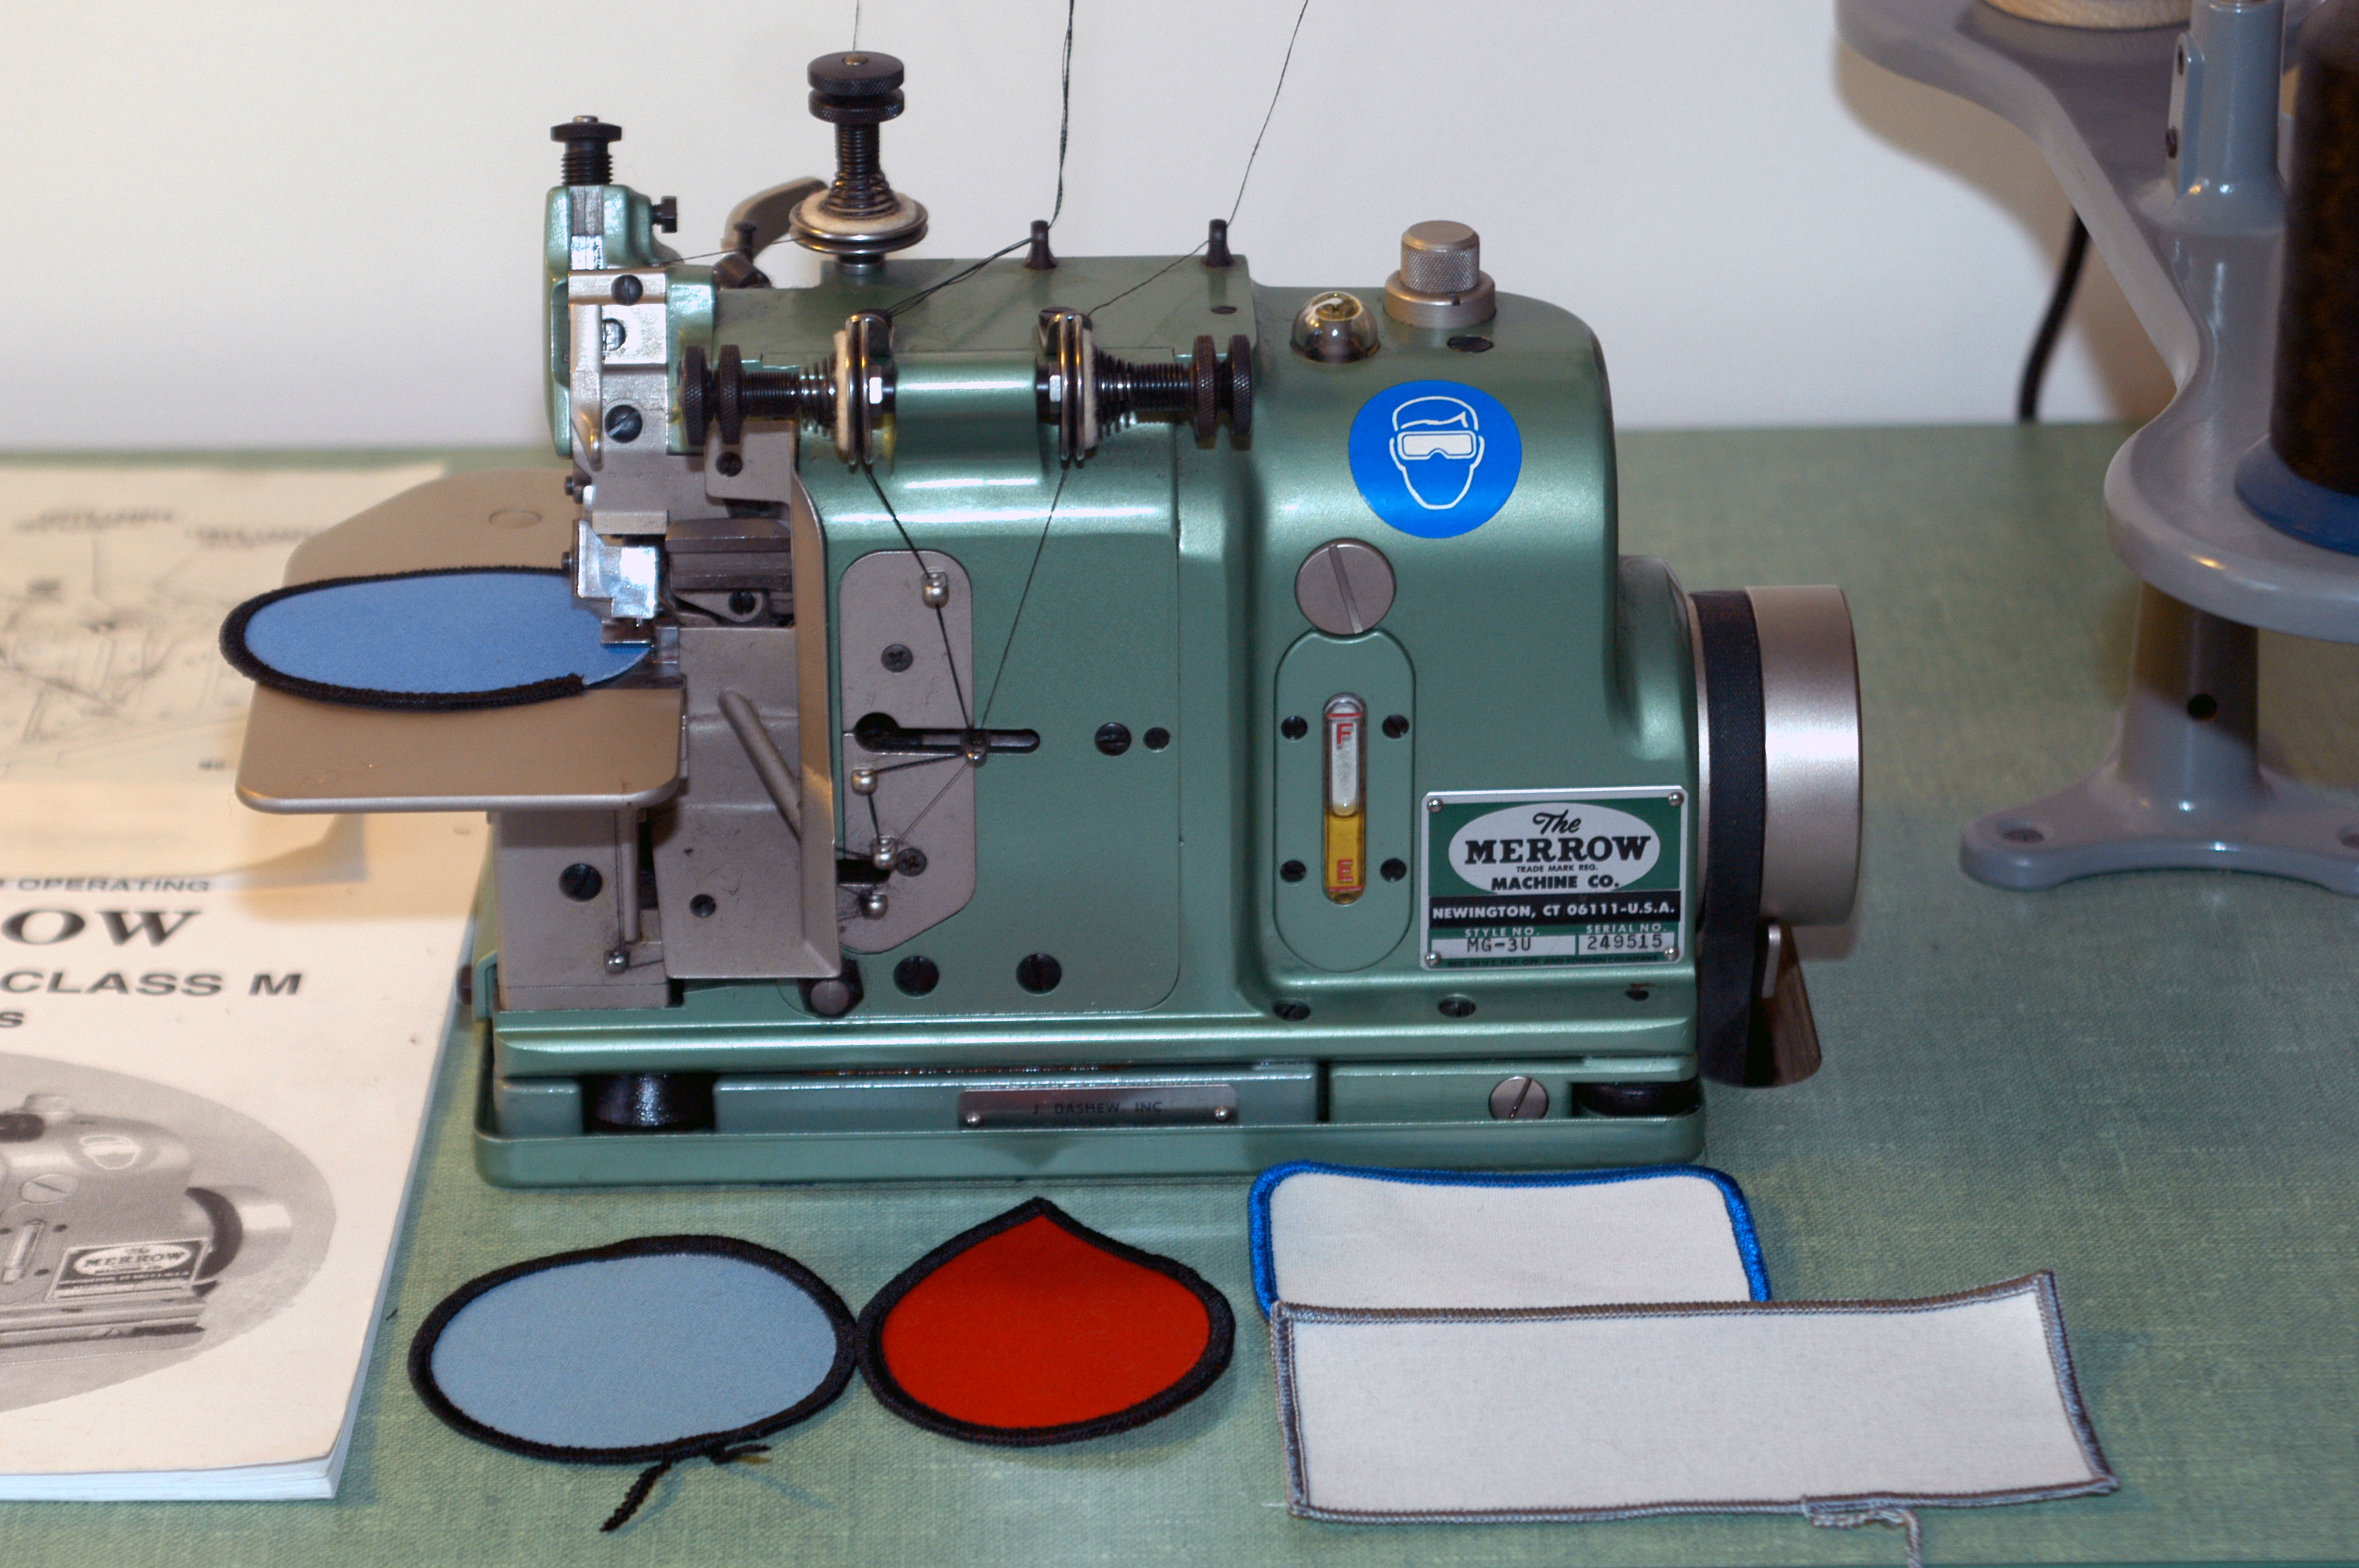 Used Embroidery Machines For Sale >> Used Merrow MG-3U + workstation for sale